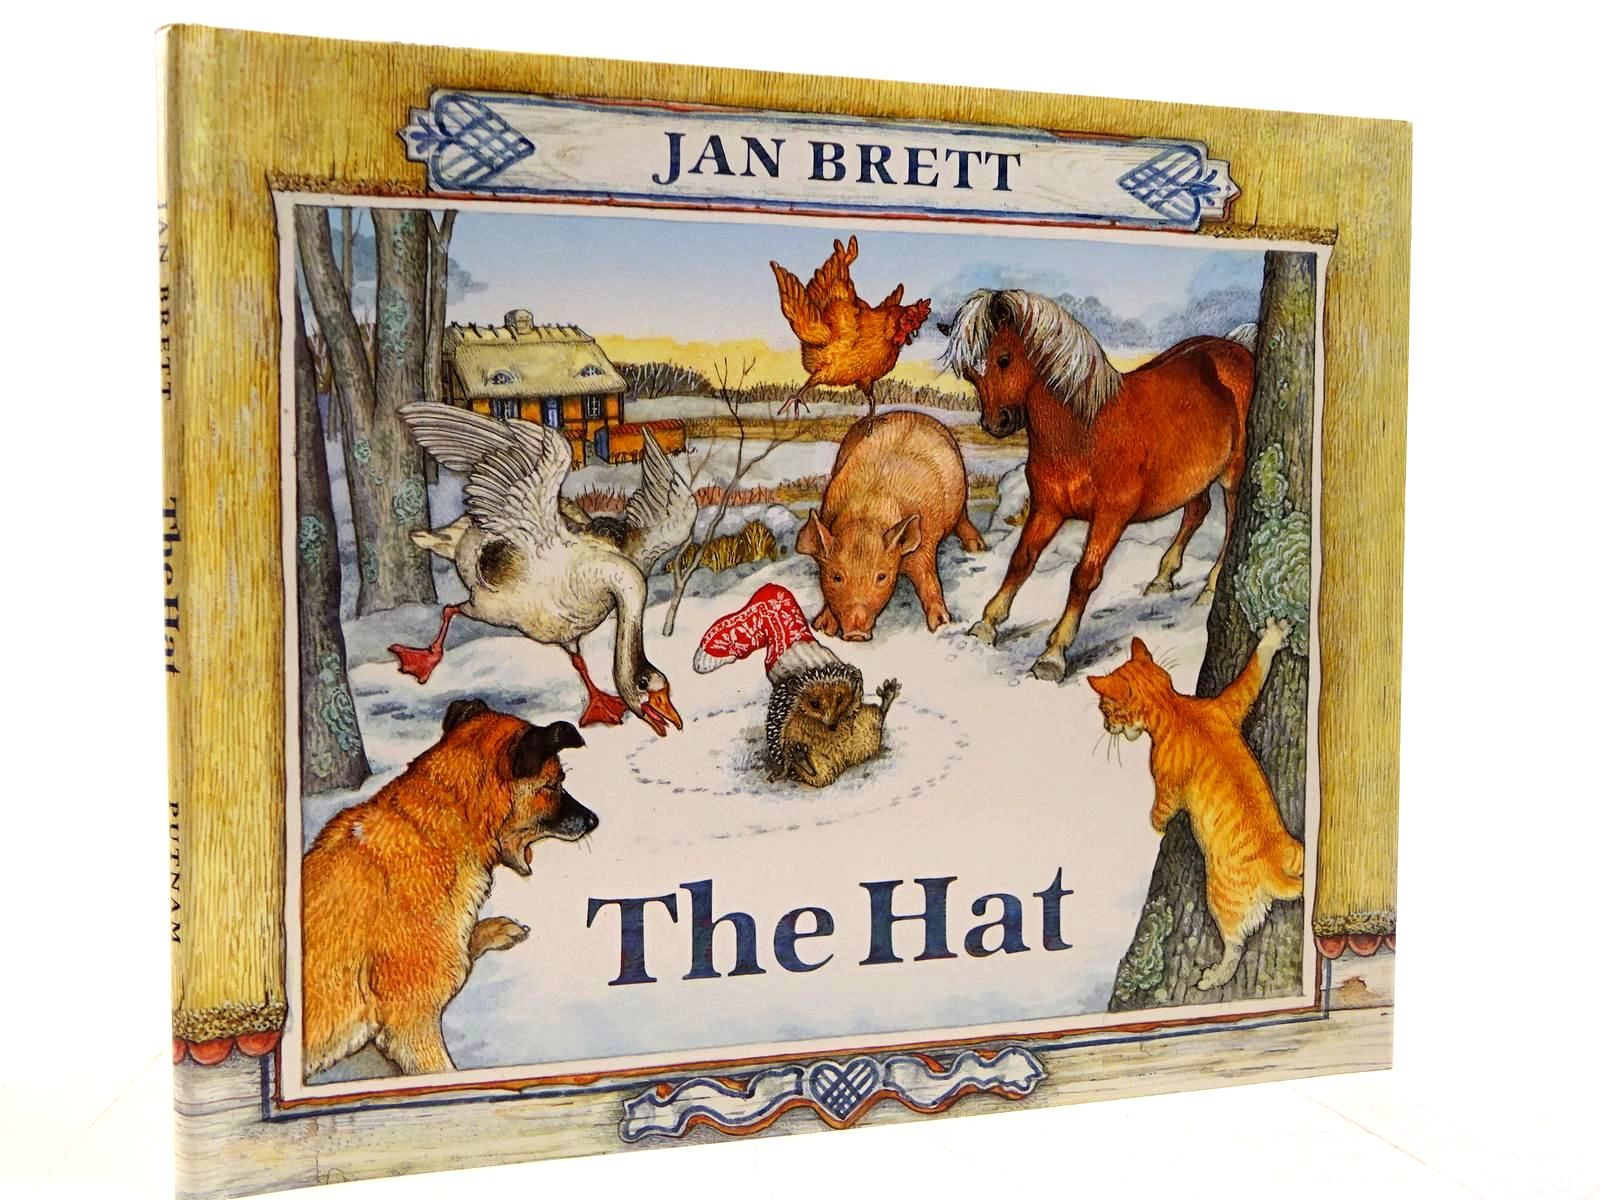 Photo of THE HAT written by Brett, Jan illustrated by Brett, Jan published by G.P. Putnam's Sons (STOCK CODE: 2130797)  for sale by Stella & Rose's Books